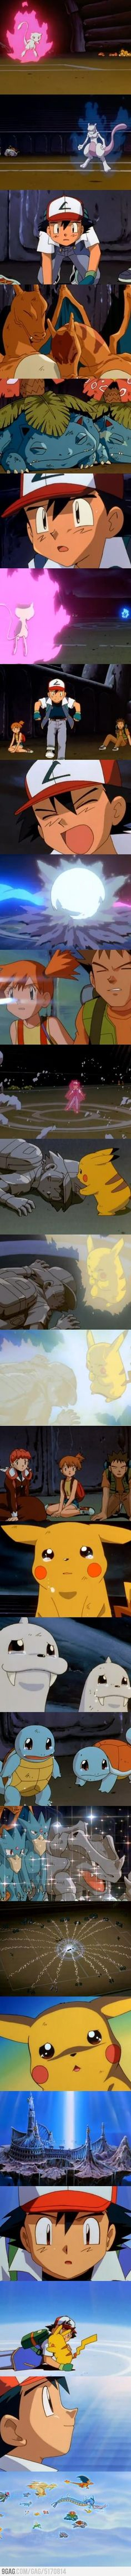 The saddest moment of my childhood - Pokèmon Movie - I still cry at this scene